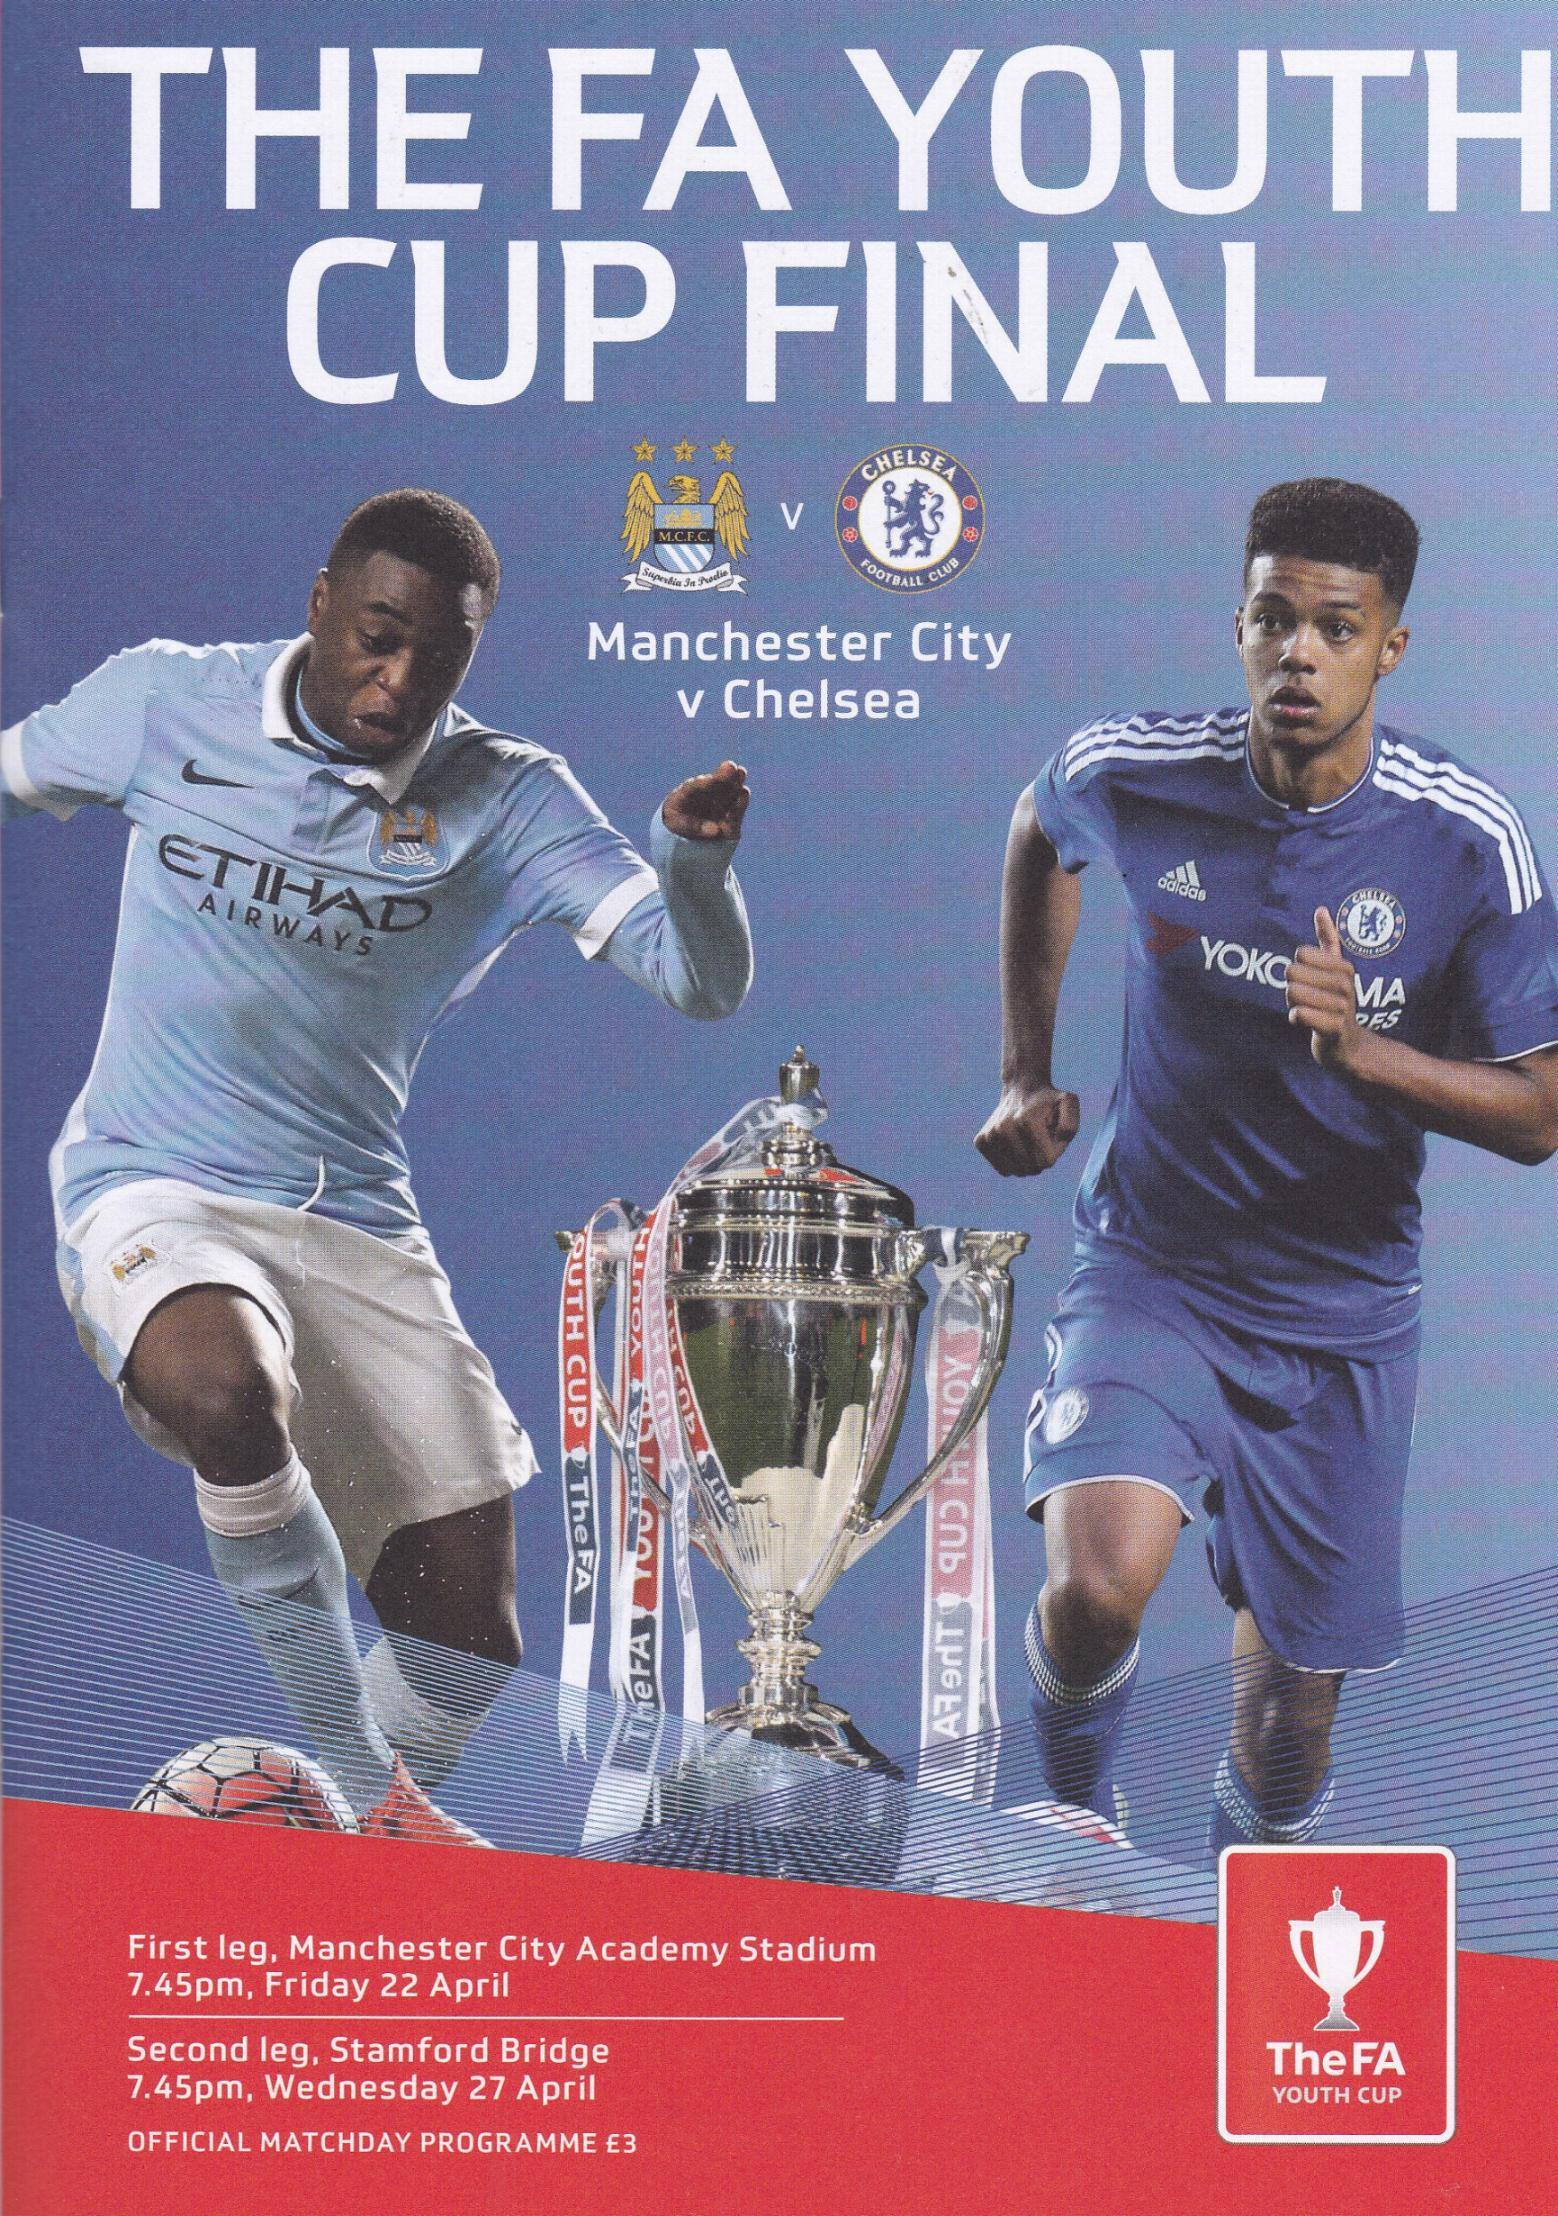 2016 FA YOUTH CUP FINAL - CHELSEA v MAN CITY (BOTH LEGS)